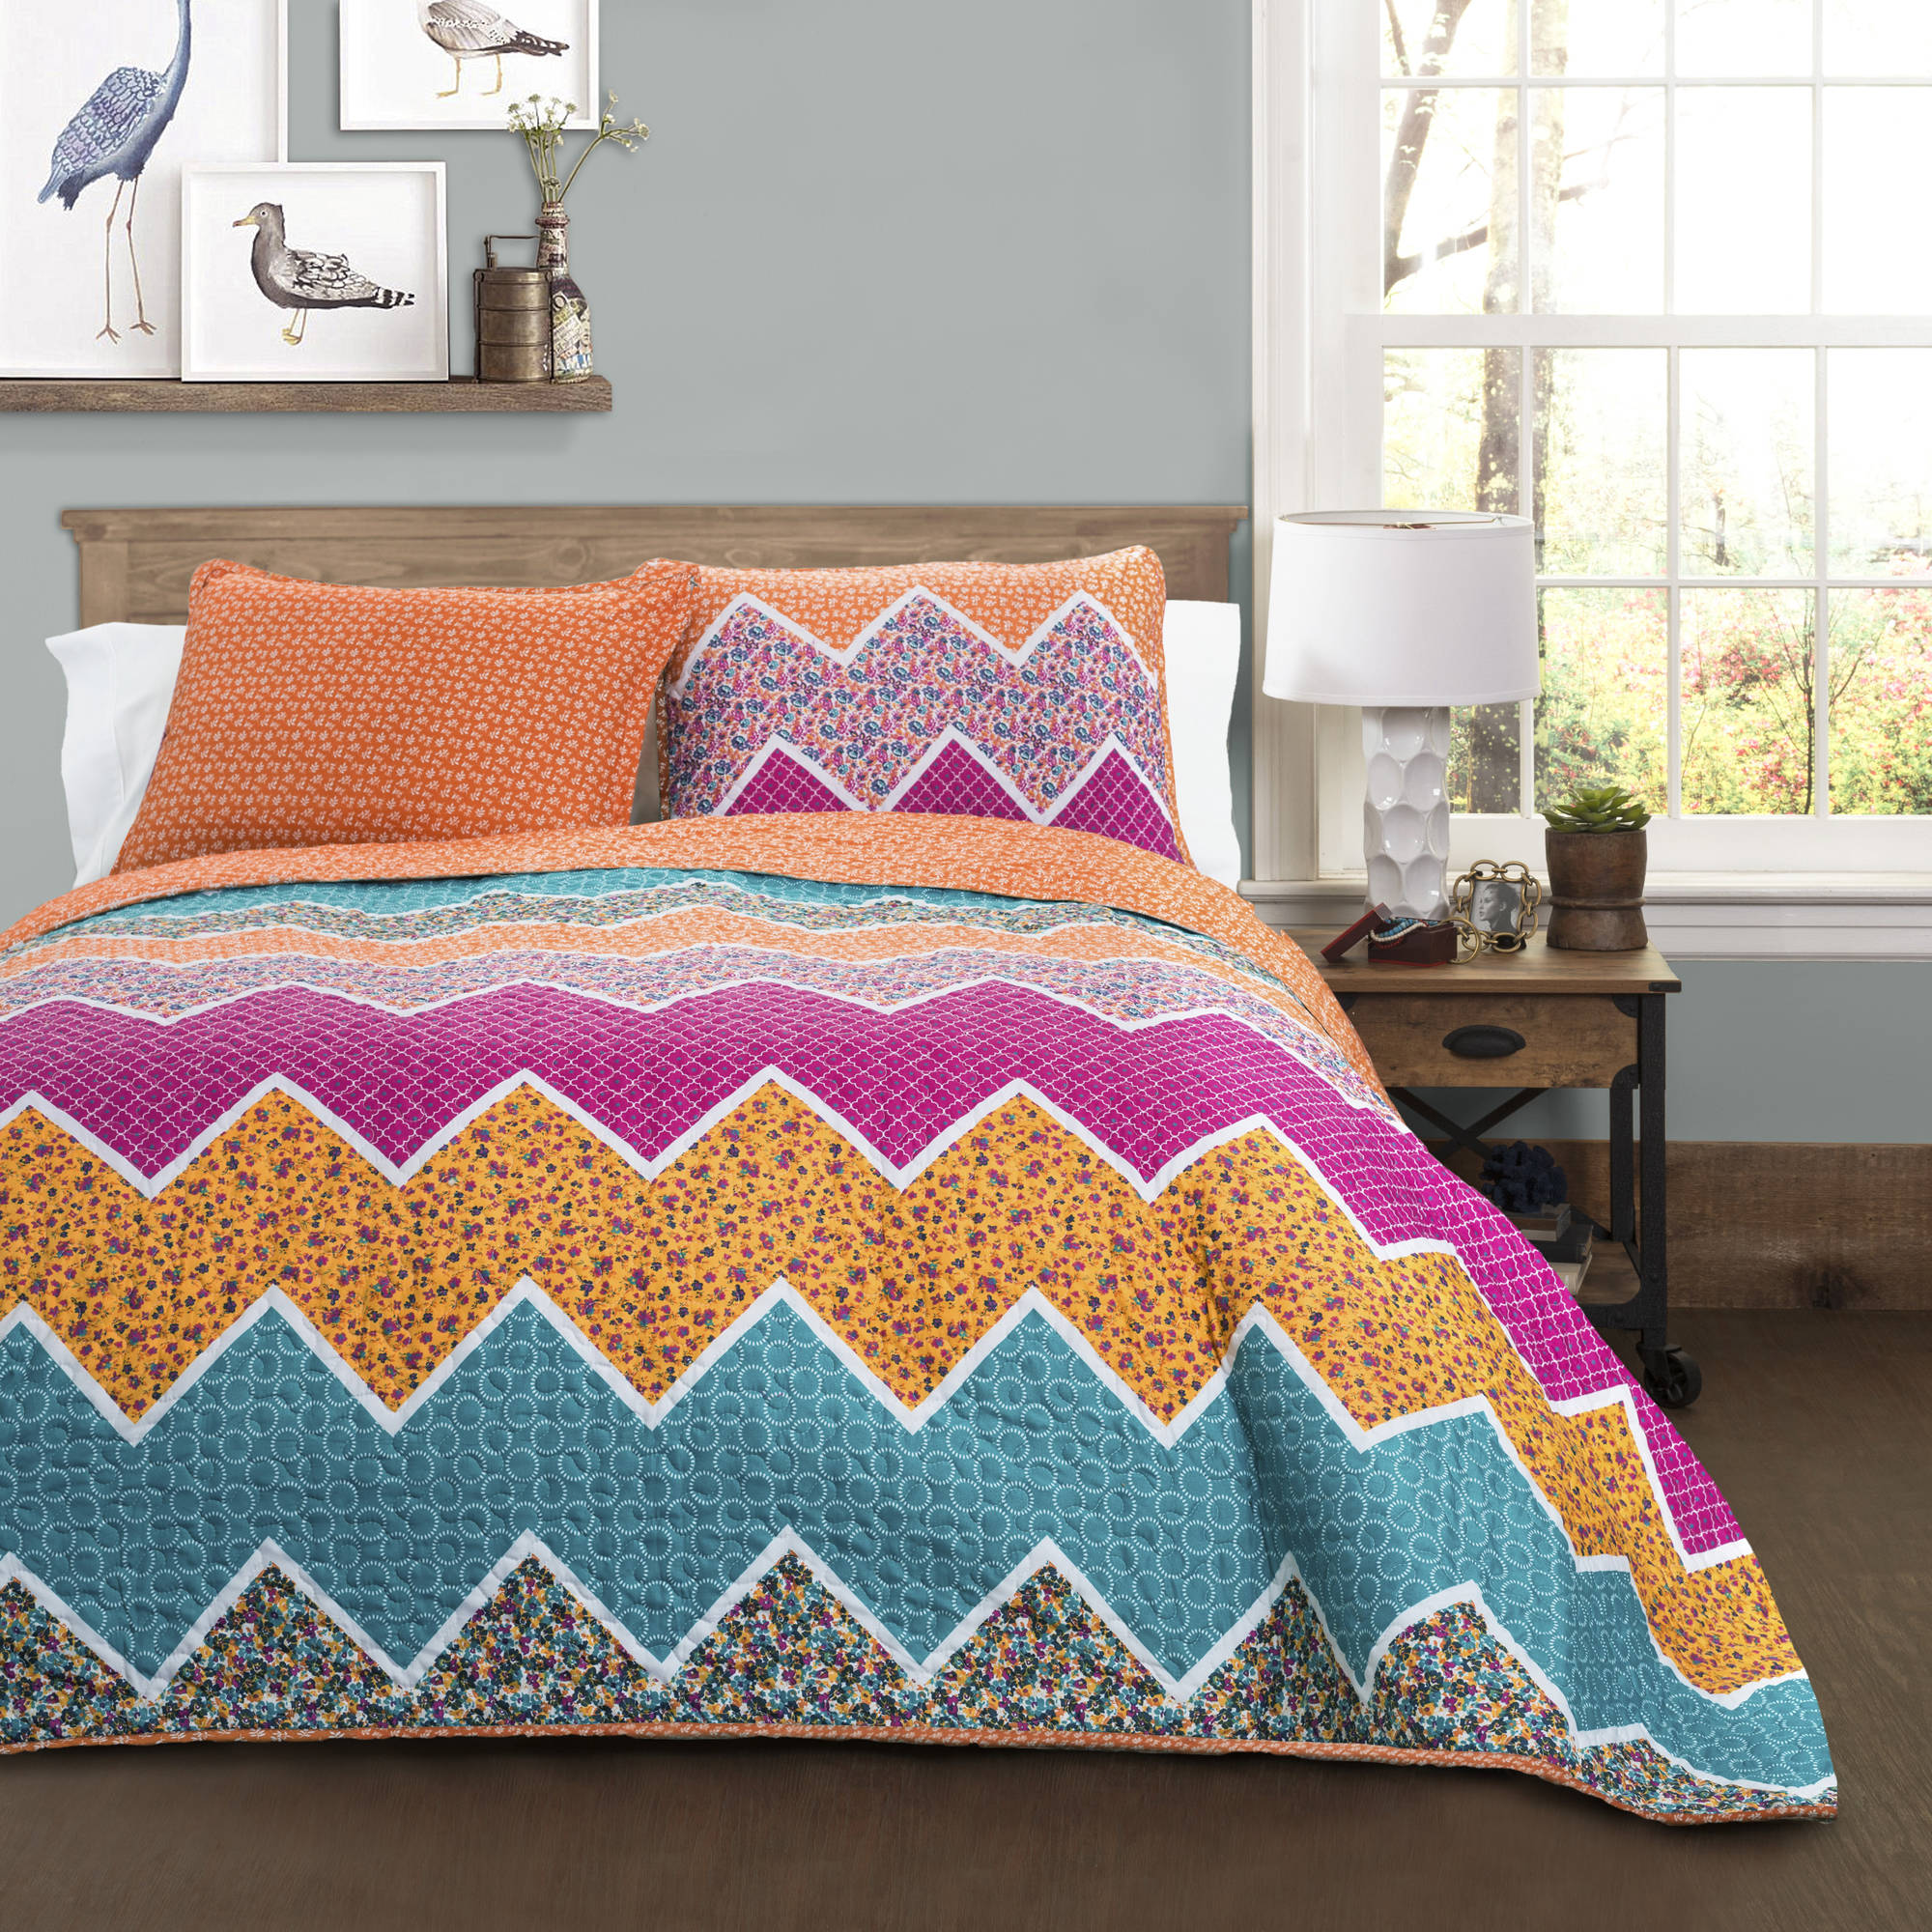 Everlyn Chevron Quilts Set, Tangerine